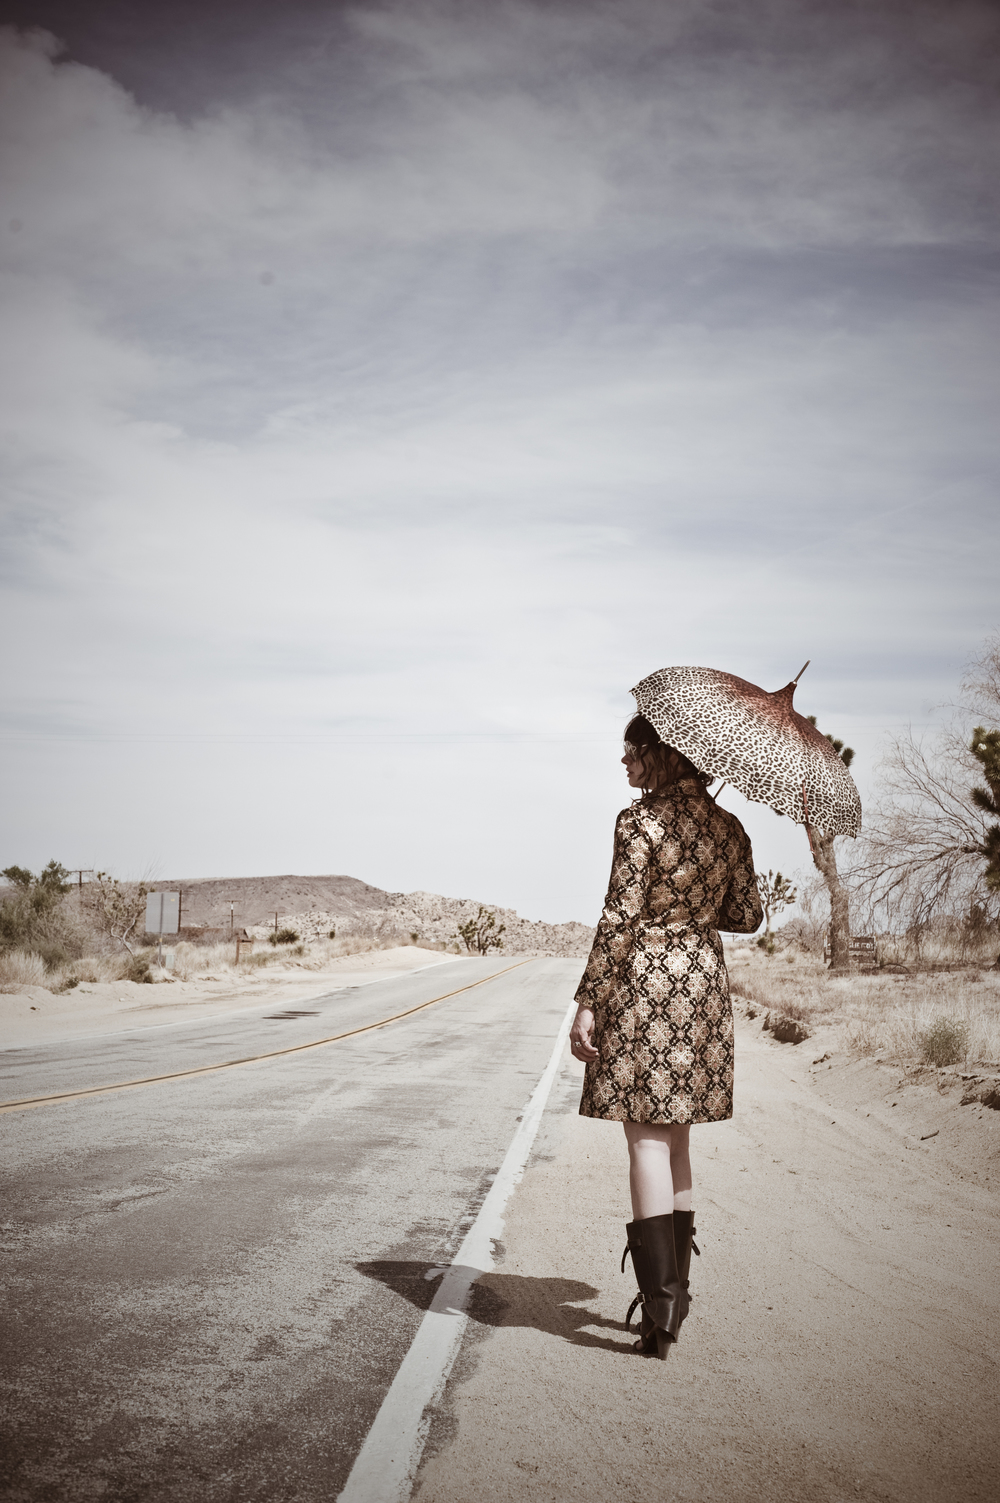 Joshua Tree  Photographer - Bryony Shearmur